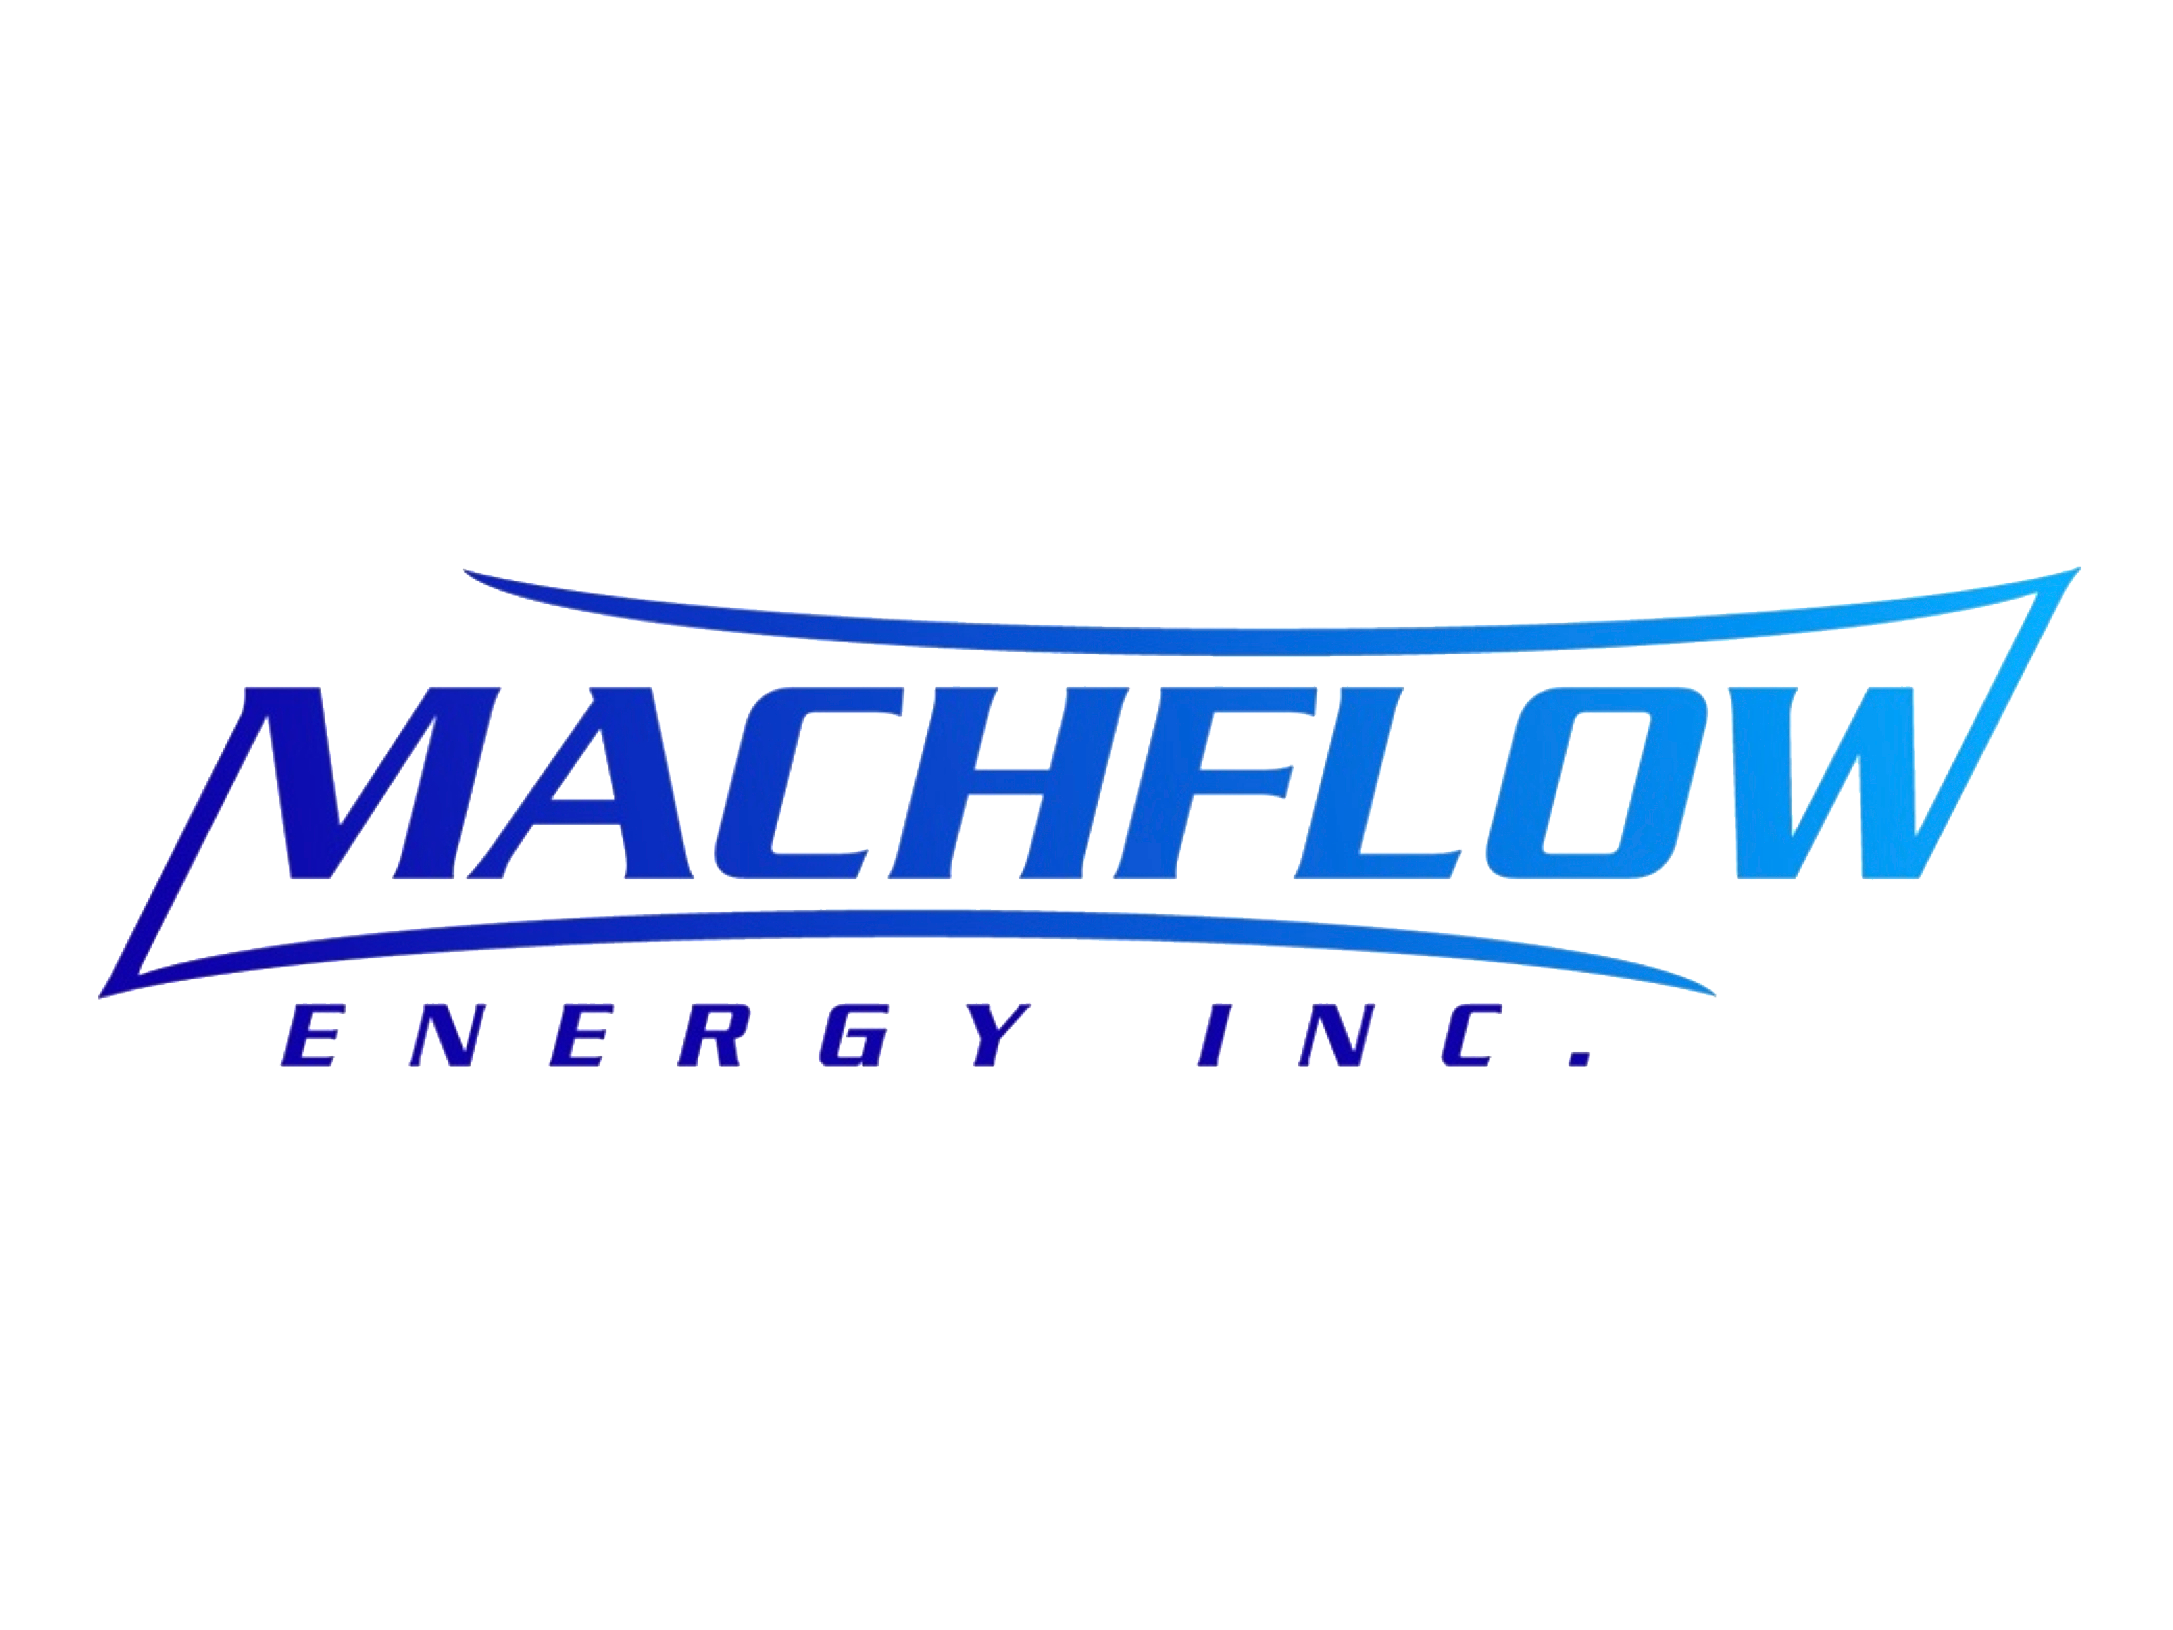 Machflow Energy Inc.